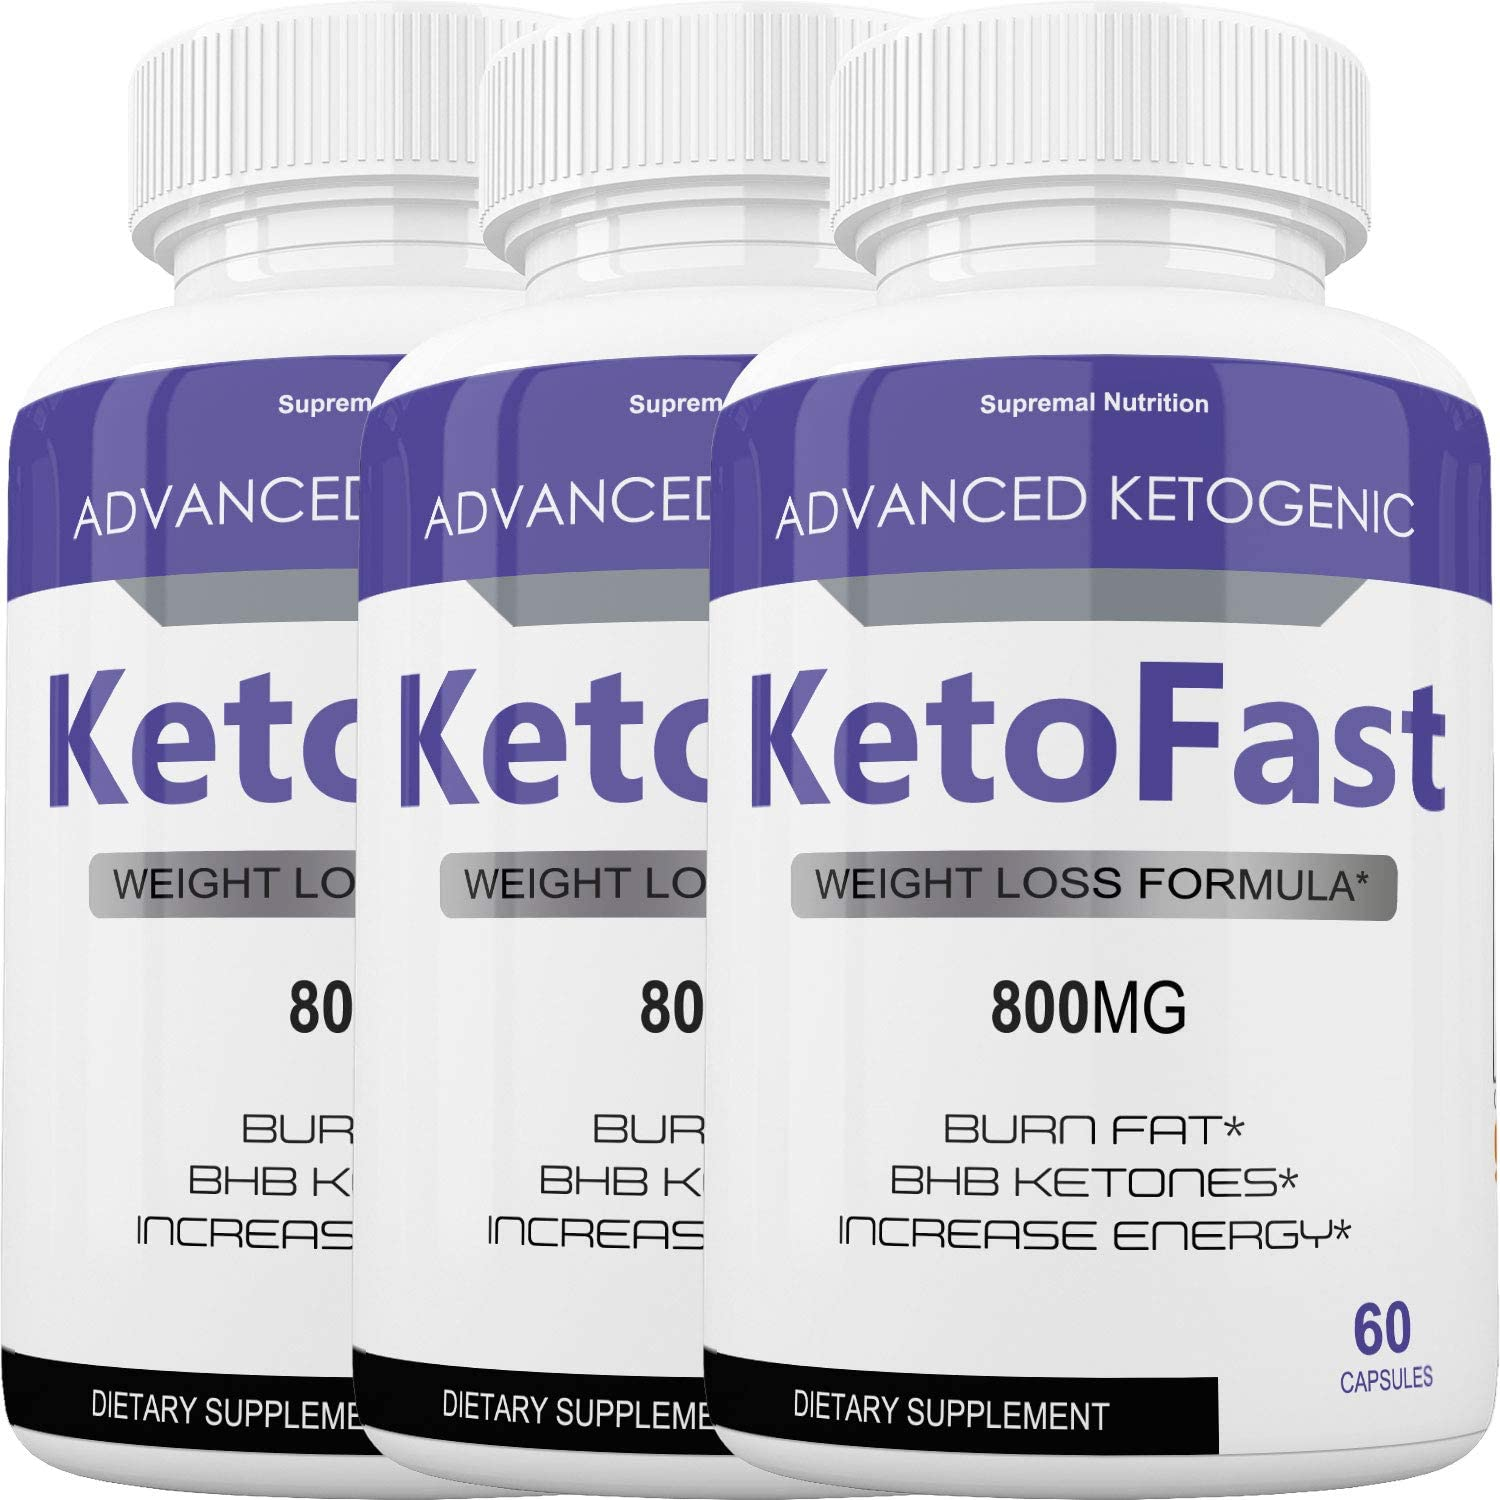 Keto Fast Diet Pills - Advanced Ketogenic Weight Loss Burn KetoFast - Burn Stubborn Fat - Energy & Focus - Suppress Appetite - Ketosis Booster - 700+100 mg (3 Month Supply)